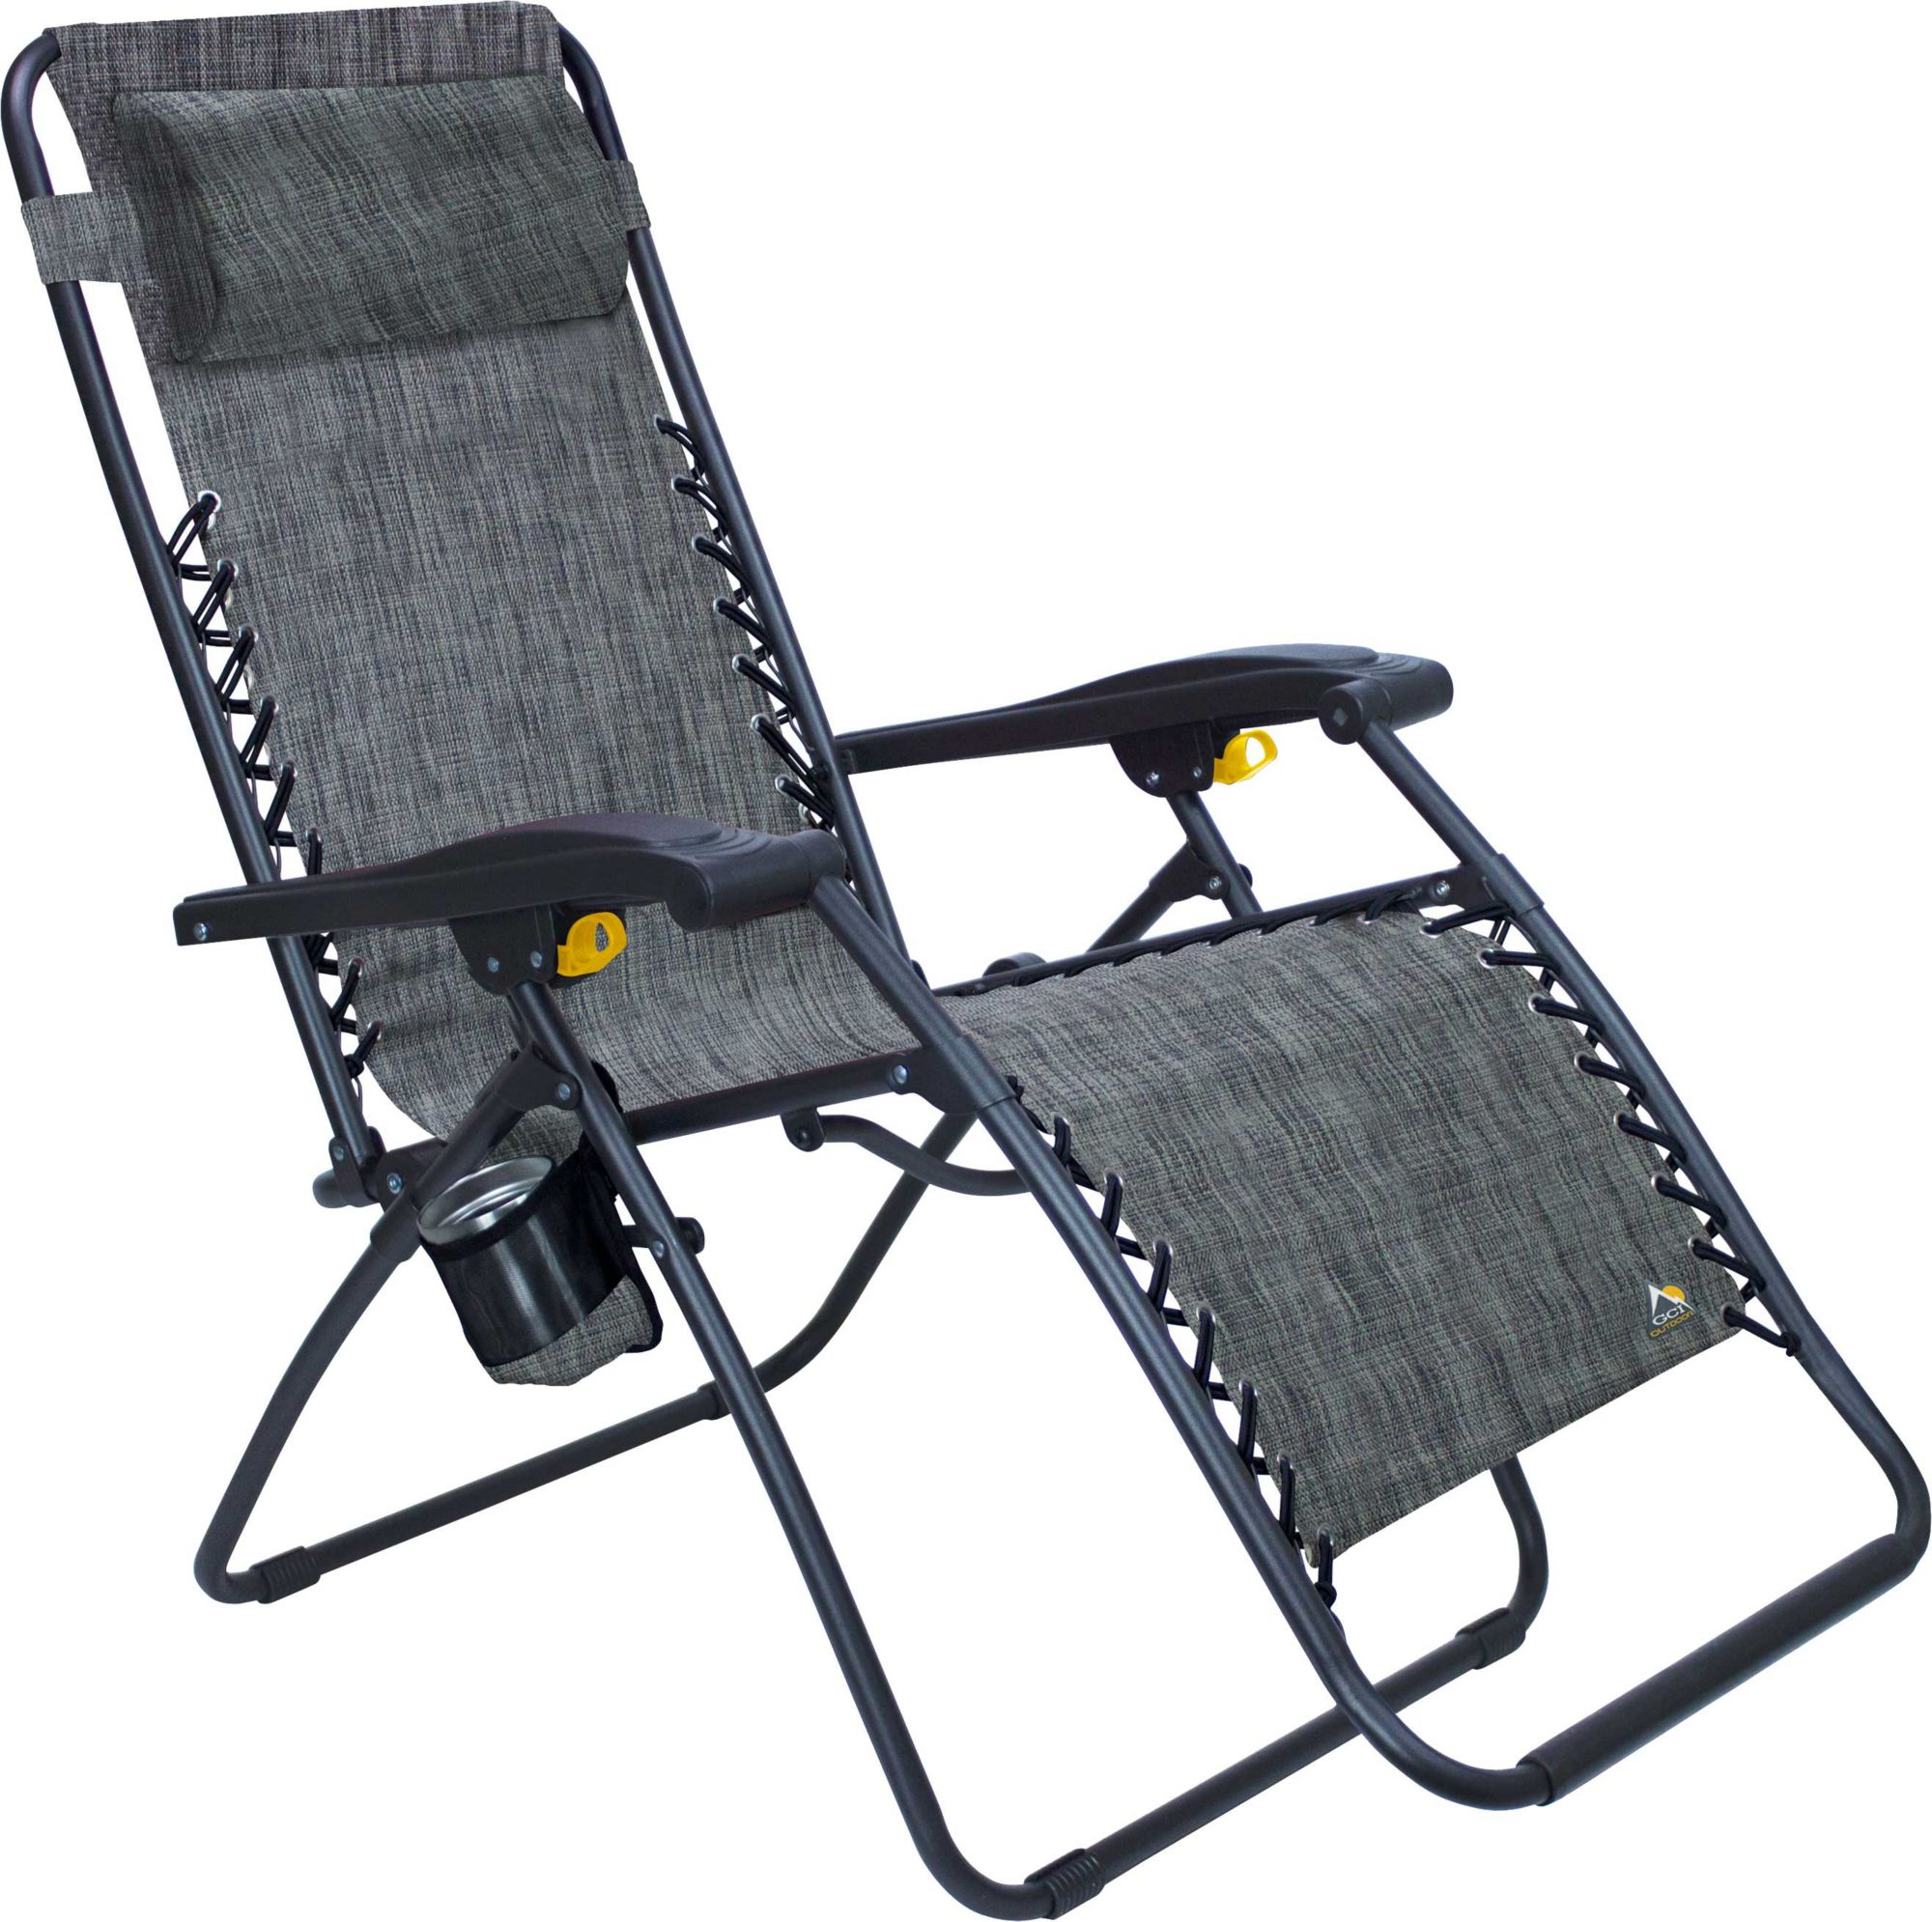 lounge hayneedle folding throughout chairs chaise gravity caravan how sports lawn zero chair